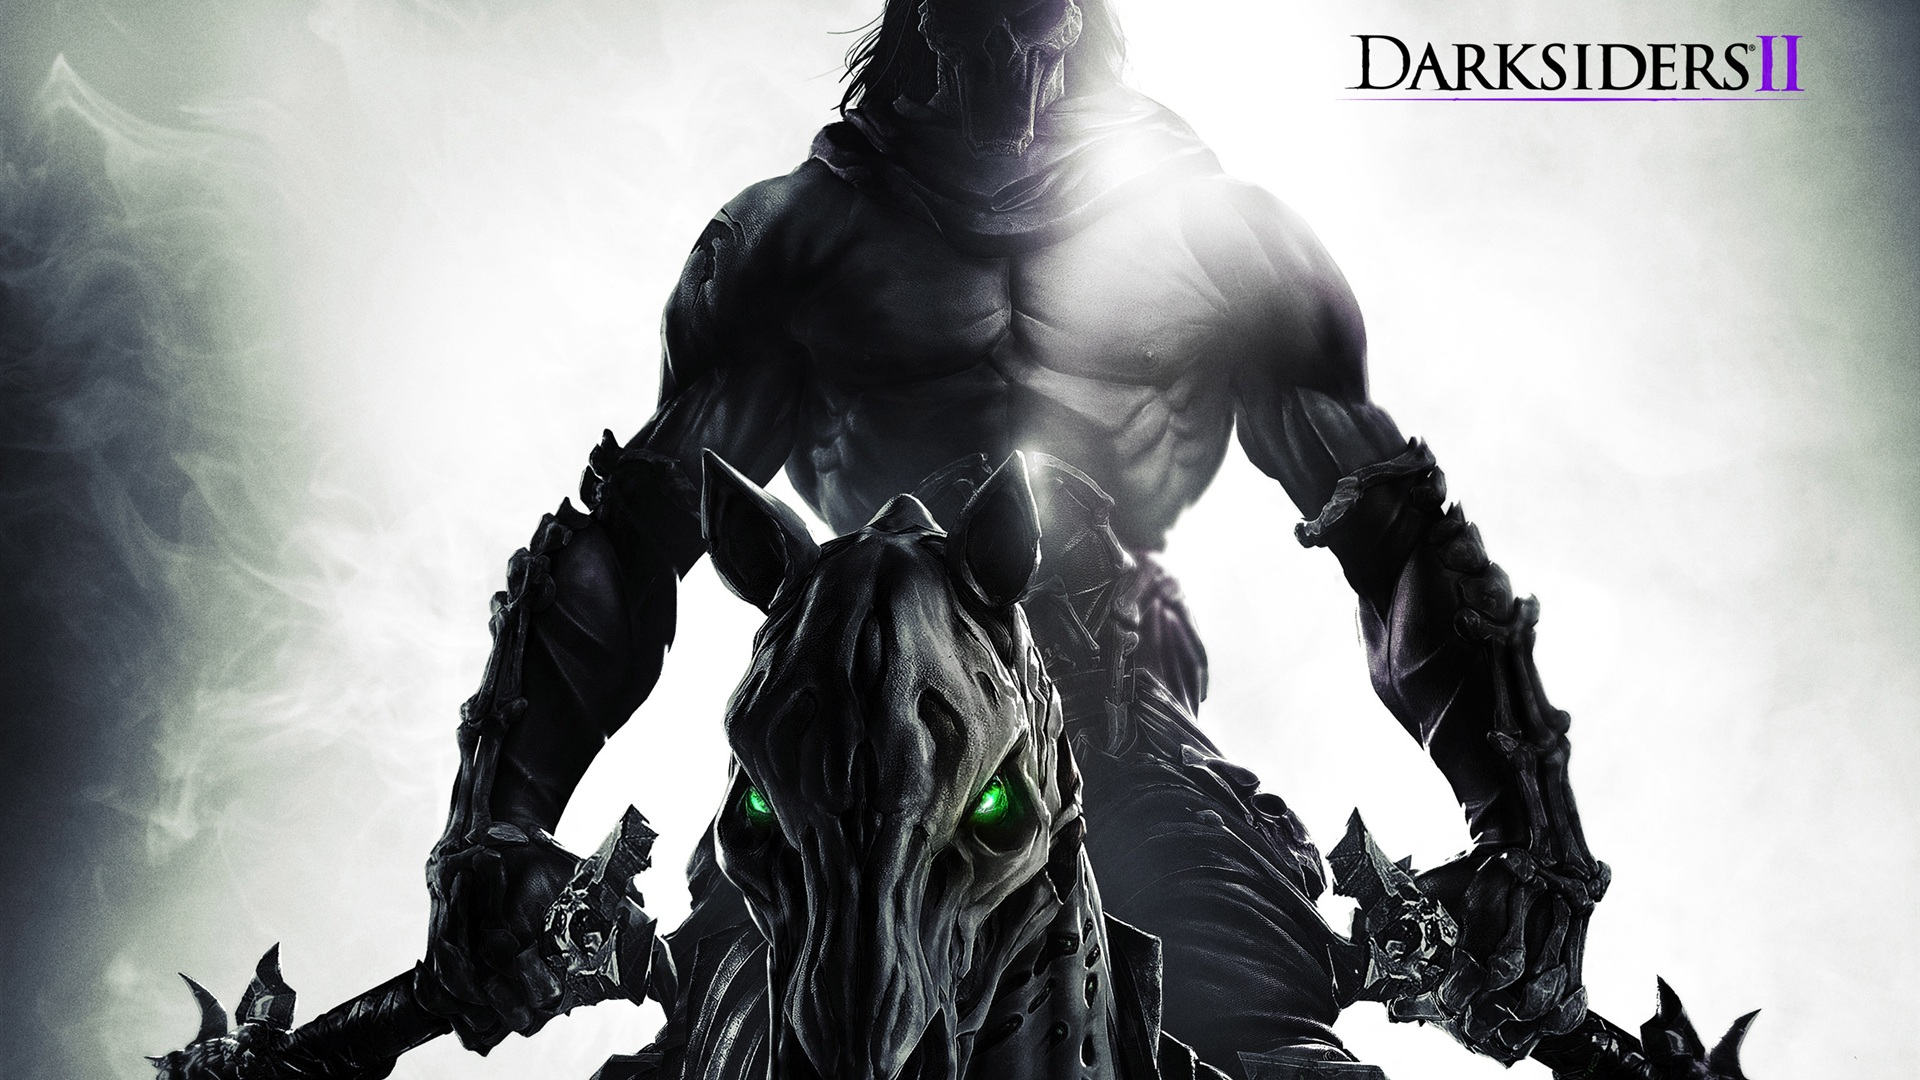 Darksiders II HD Wallpaper 1080p Pictures Photos 1920x1080